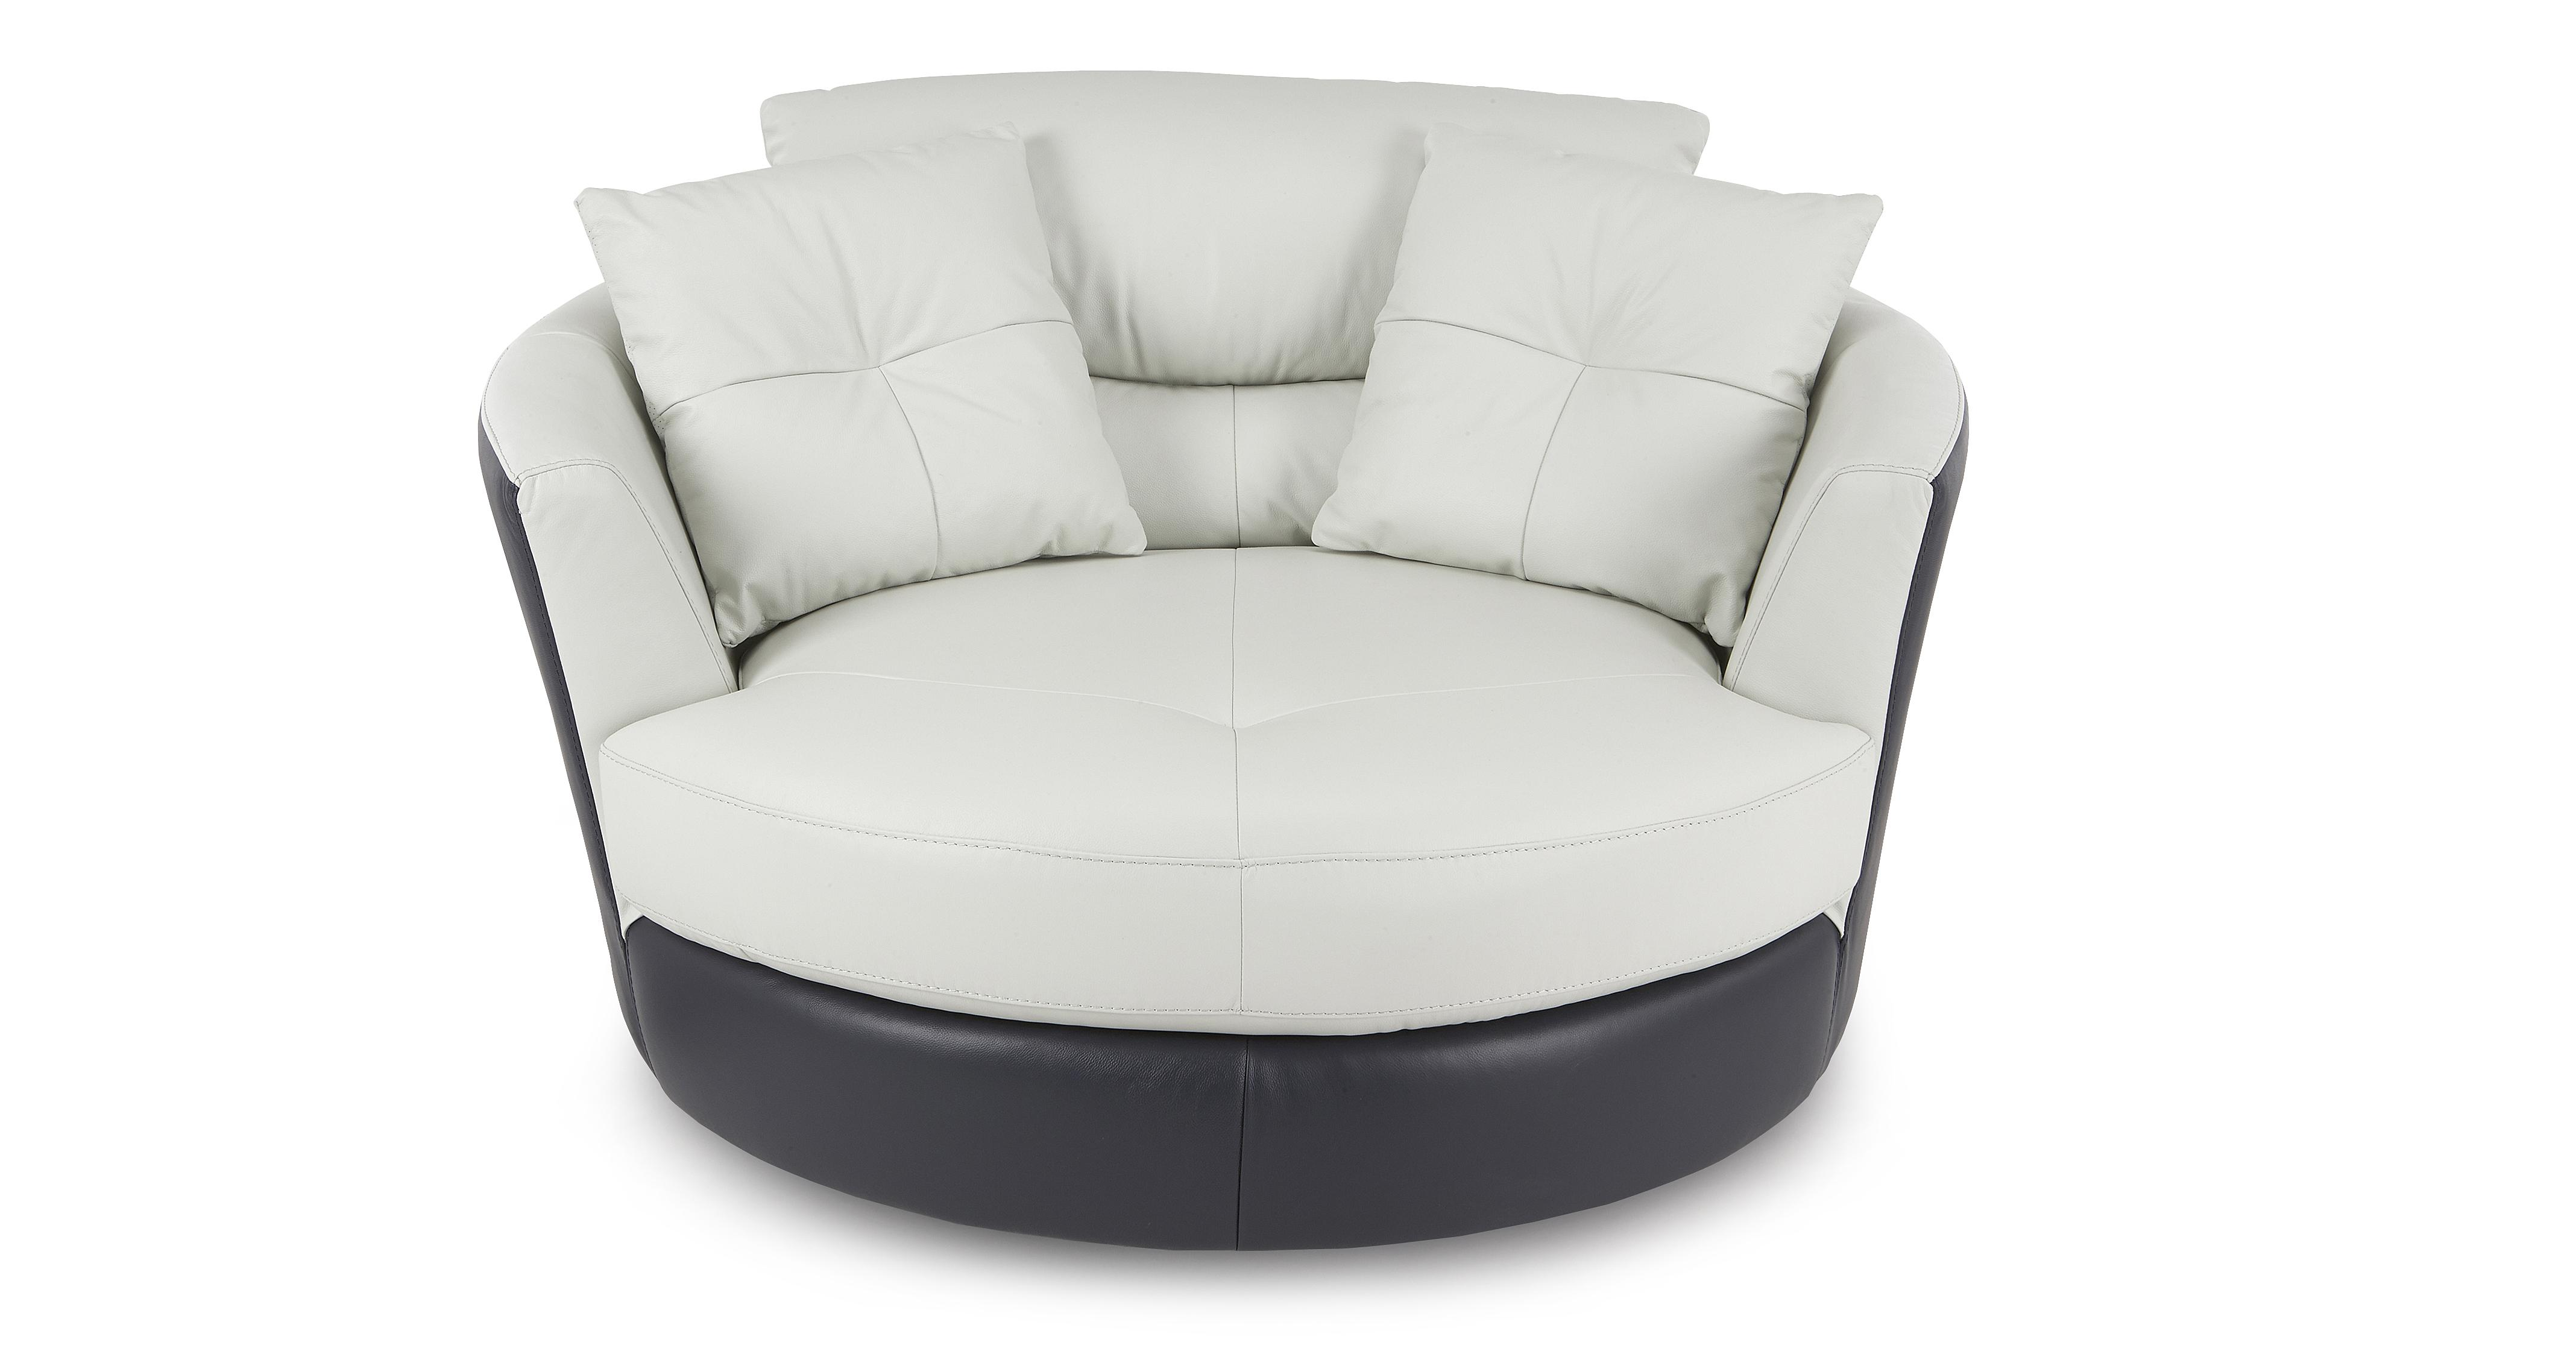 swivel chair and a half power lift reviews dfs azure 100 real aqua white leather set inc